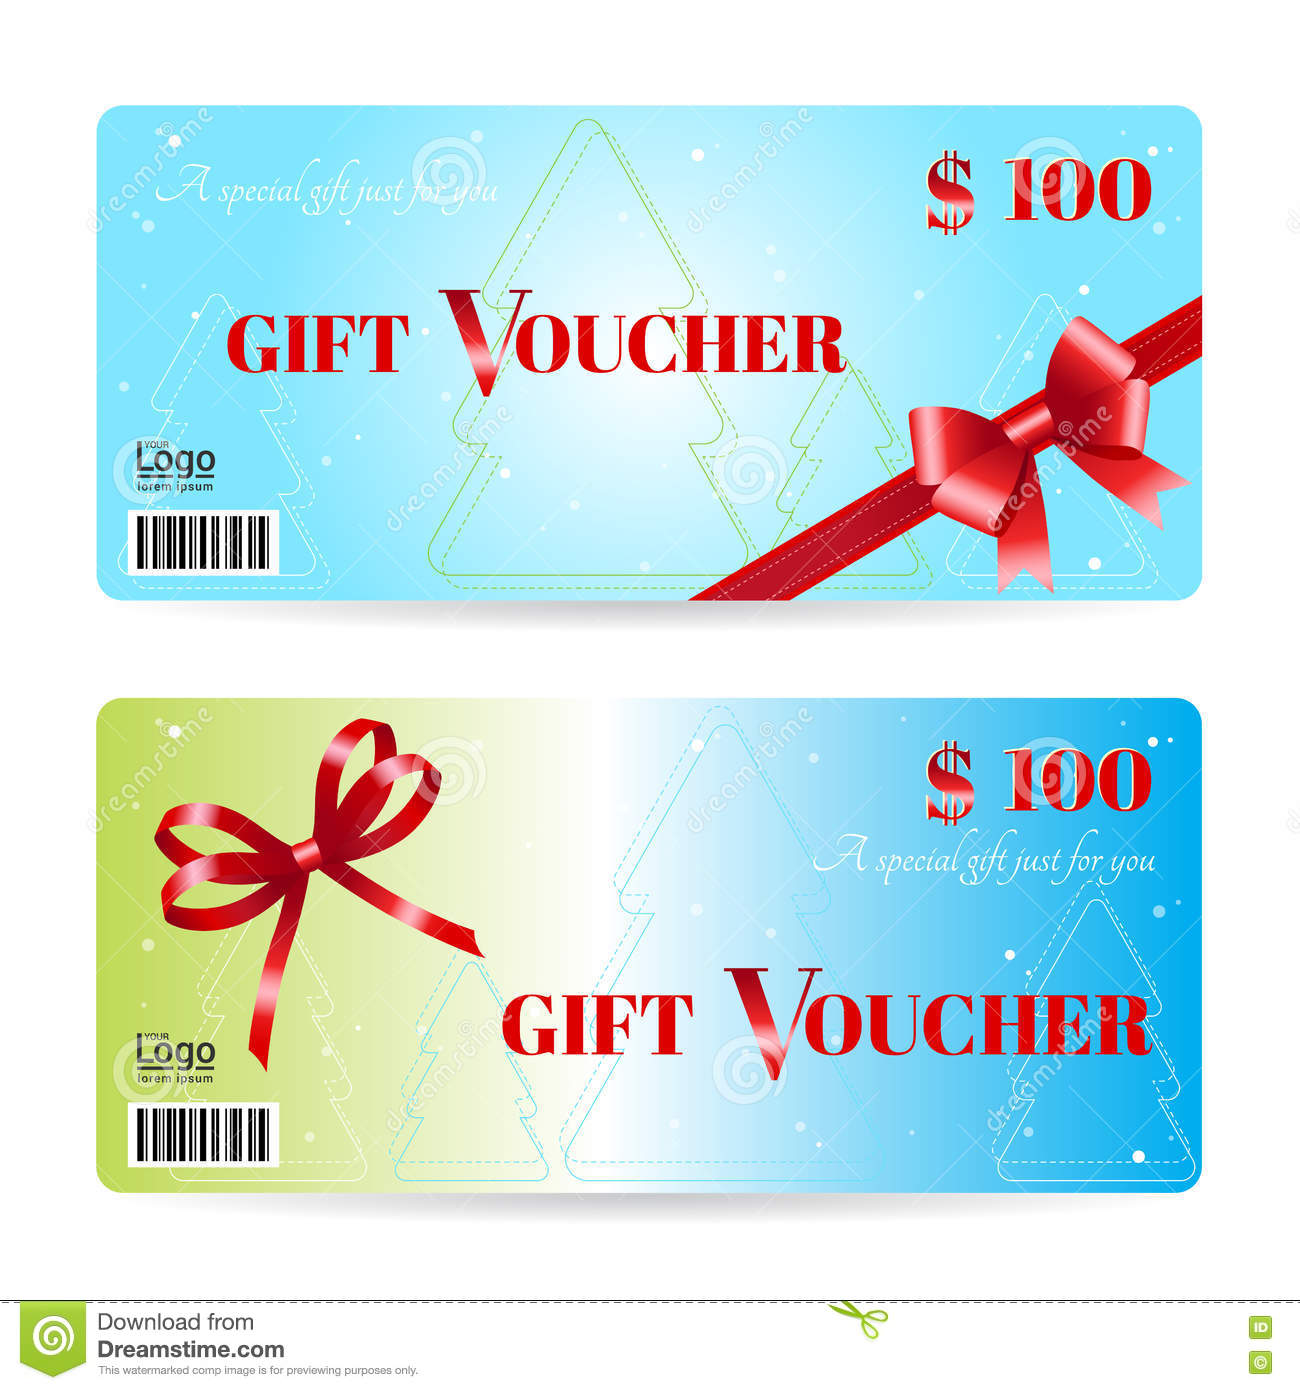 Christmas voucher templates free download militaryalicious christmas voucher templates free download yelopaper Gallery